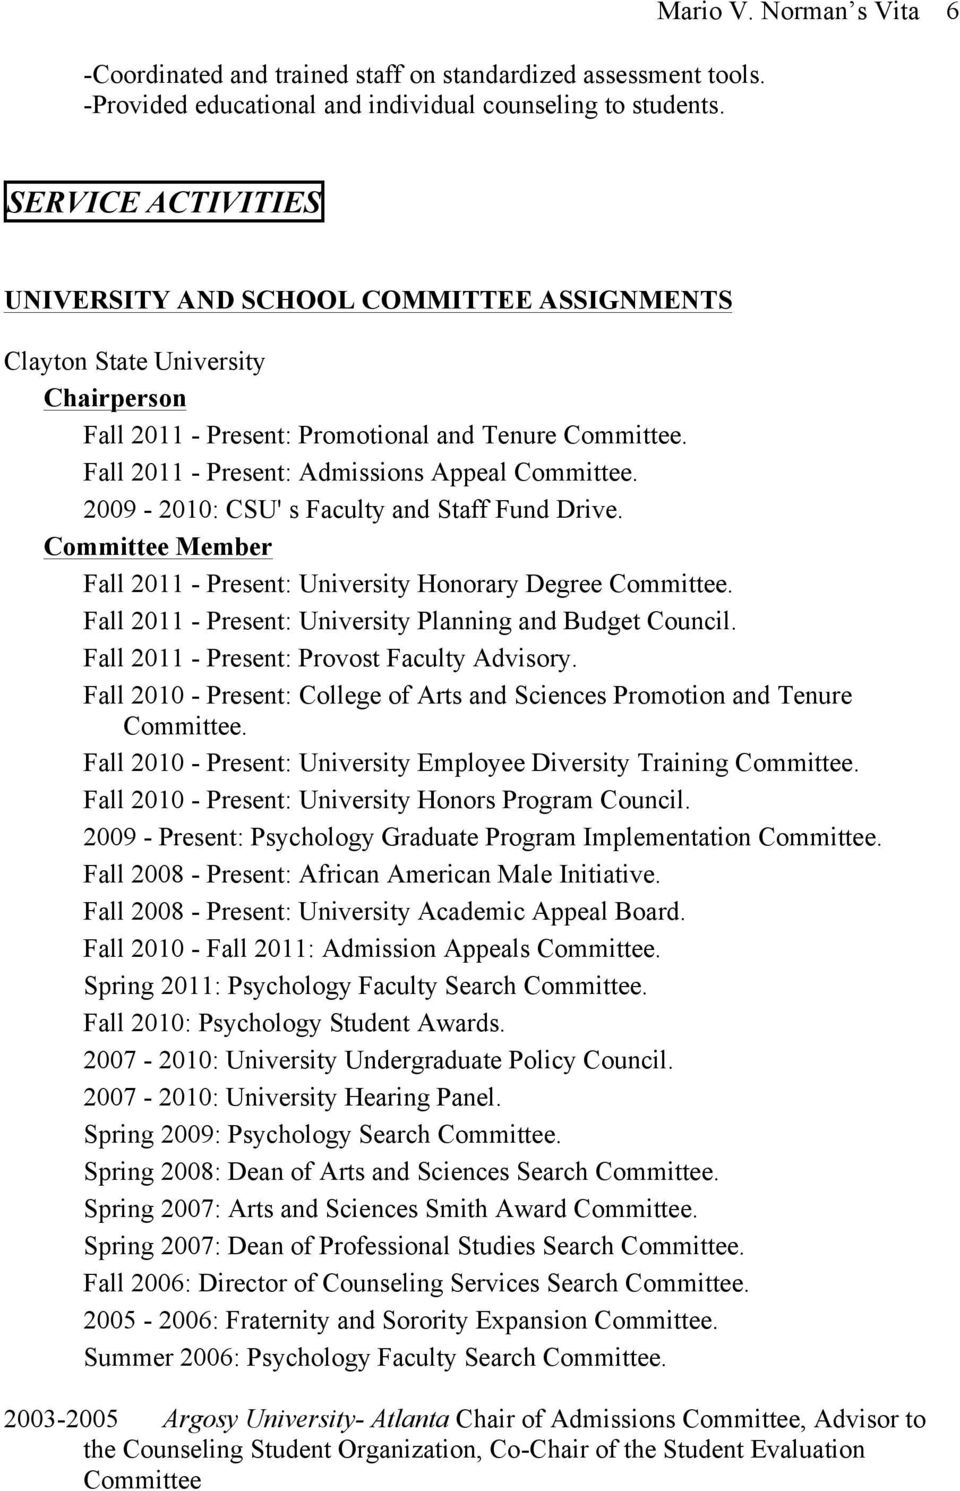 2009-2010: CSU' s Faculty and Staff Fund Drive. Committee Member Fall 2011 - Present: University Honorary Degree Committee. Fall 2011 - Present: University Planning and Budget Council.